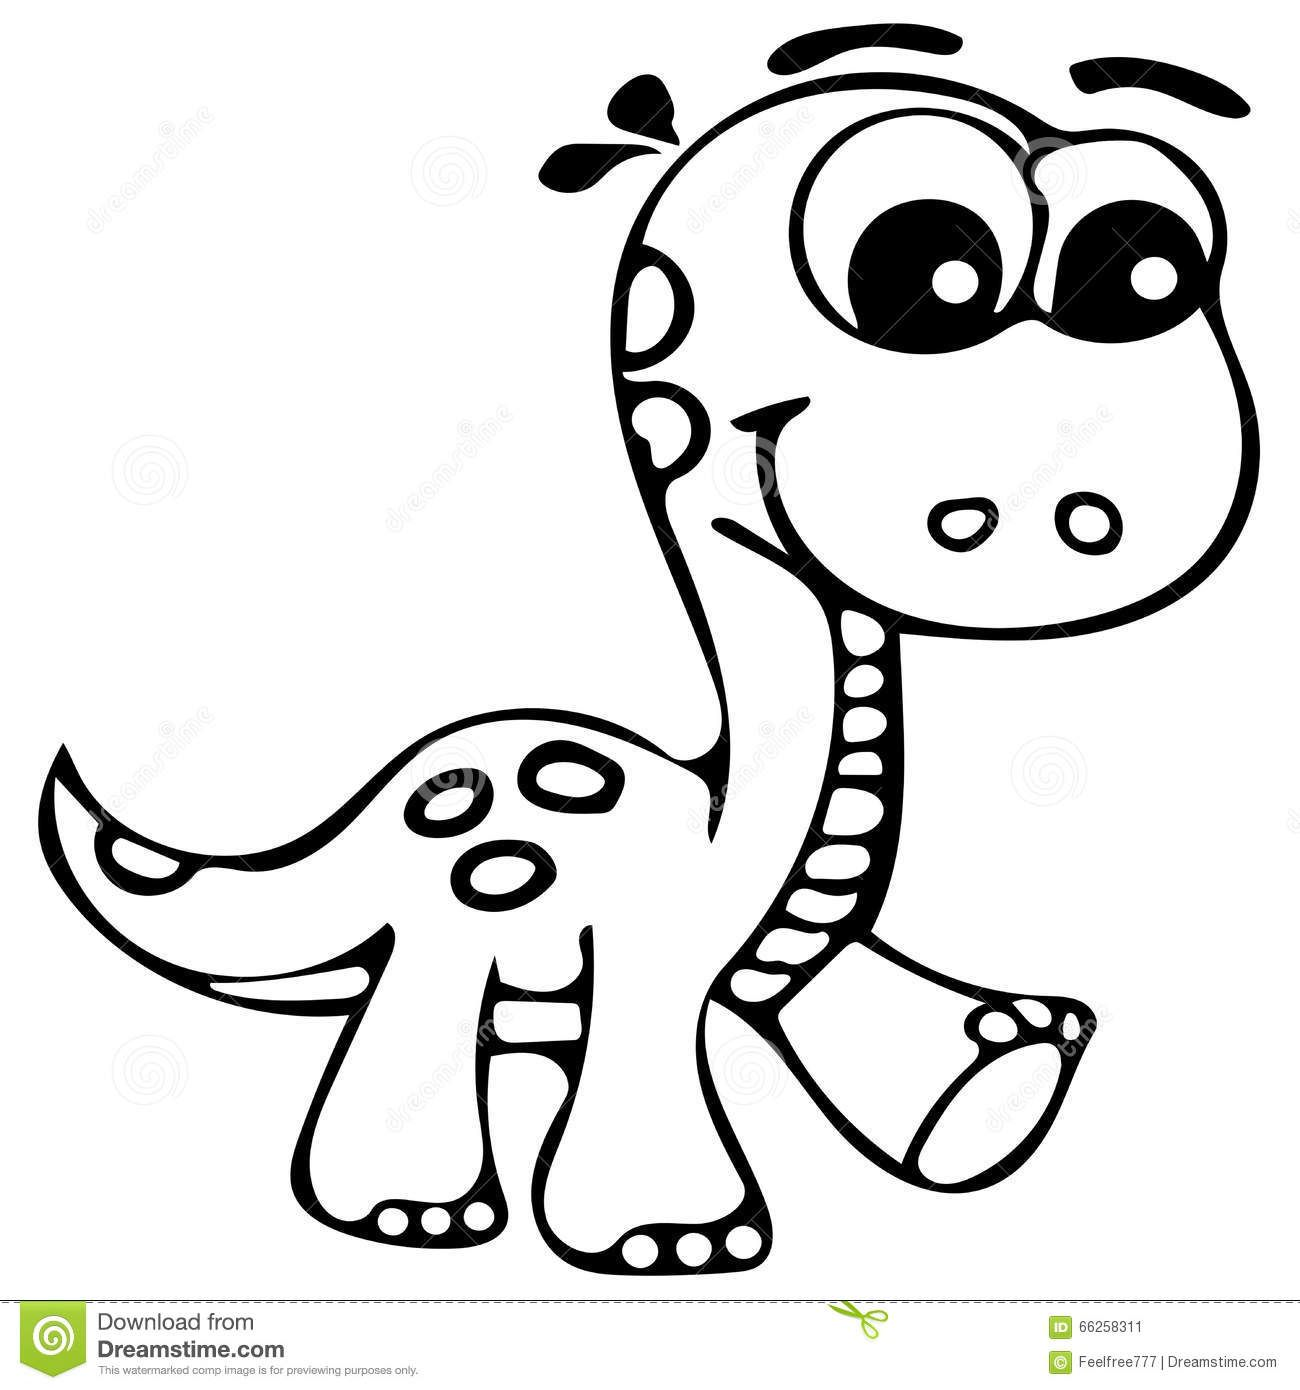 colouring in dinosaurs dinosaur coloring pages to download and print for free colouring in dinosaurs